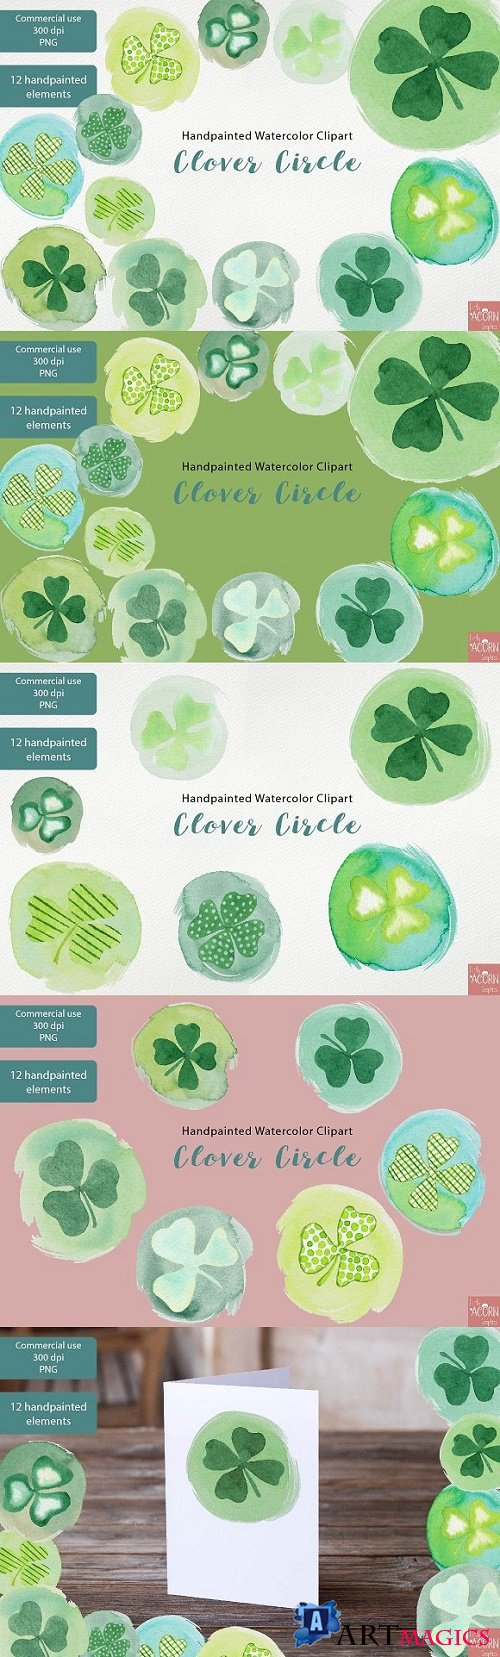 Watercolor Clipart St Patricks Day - 2321627